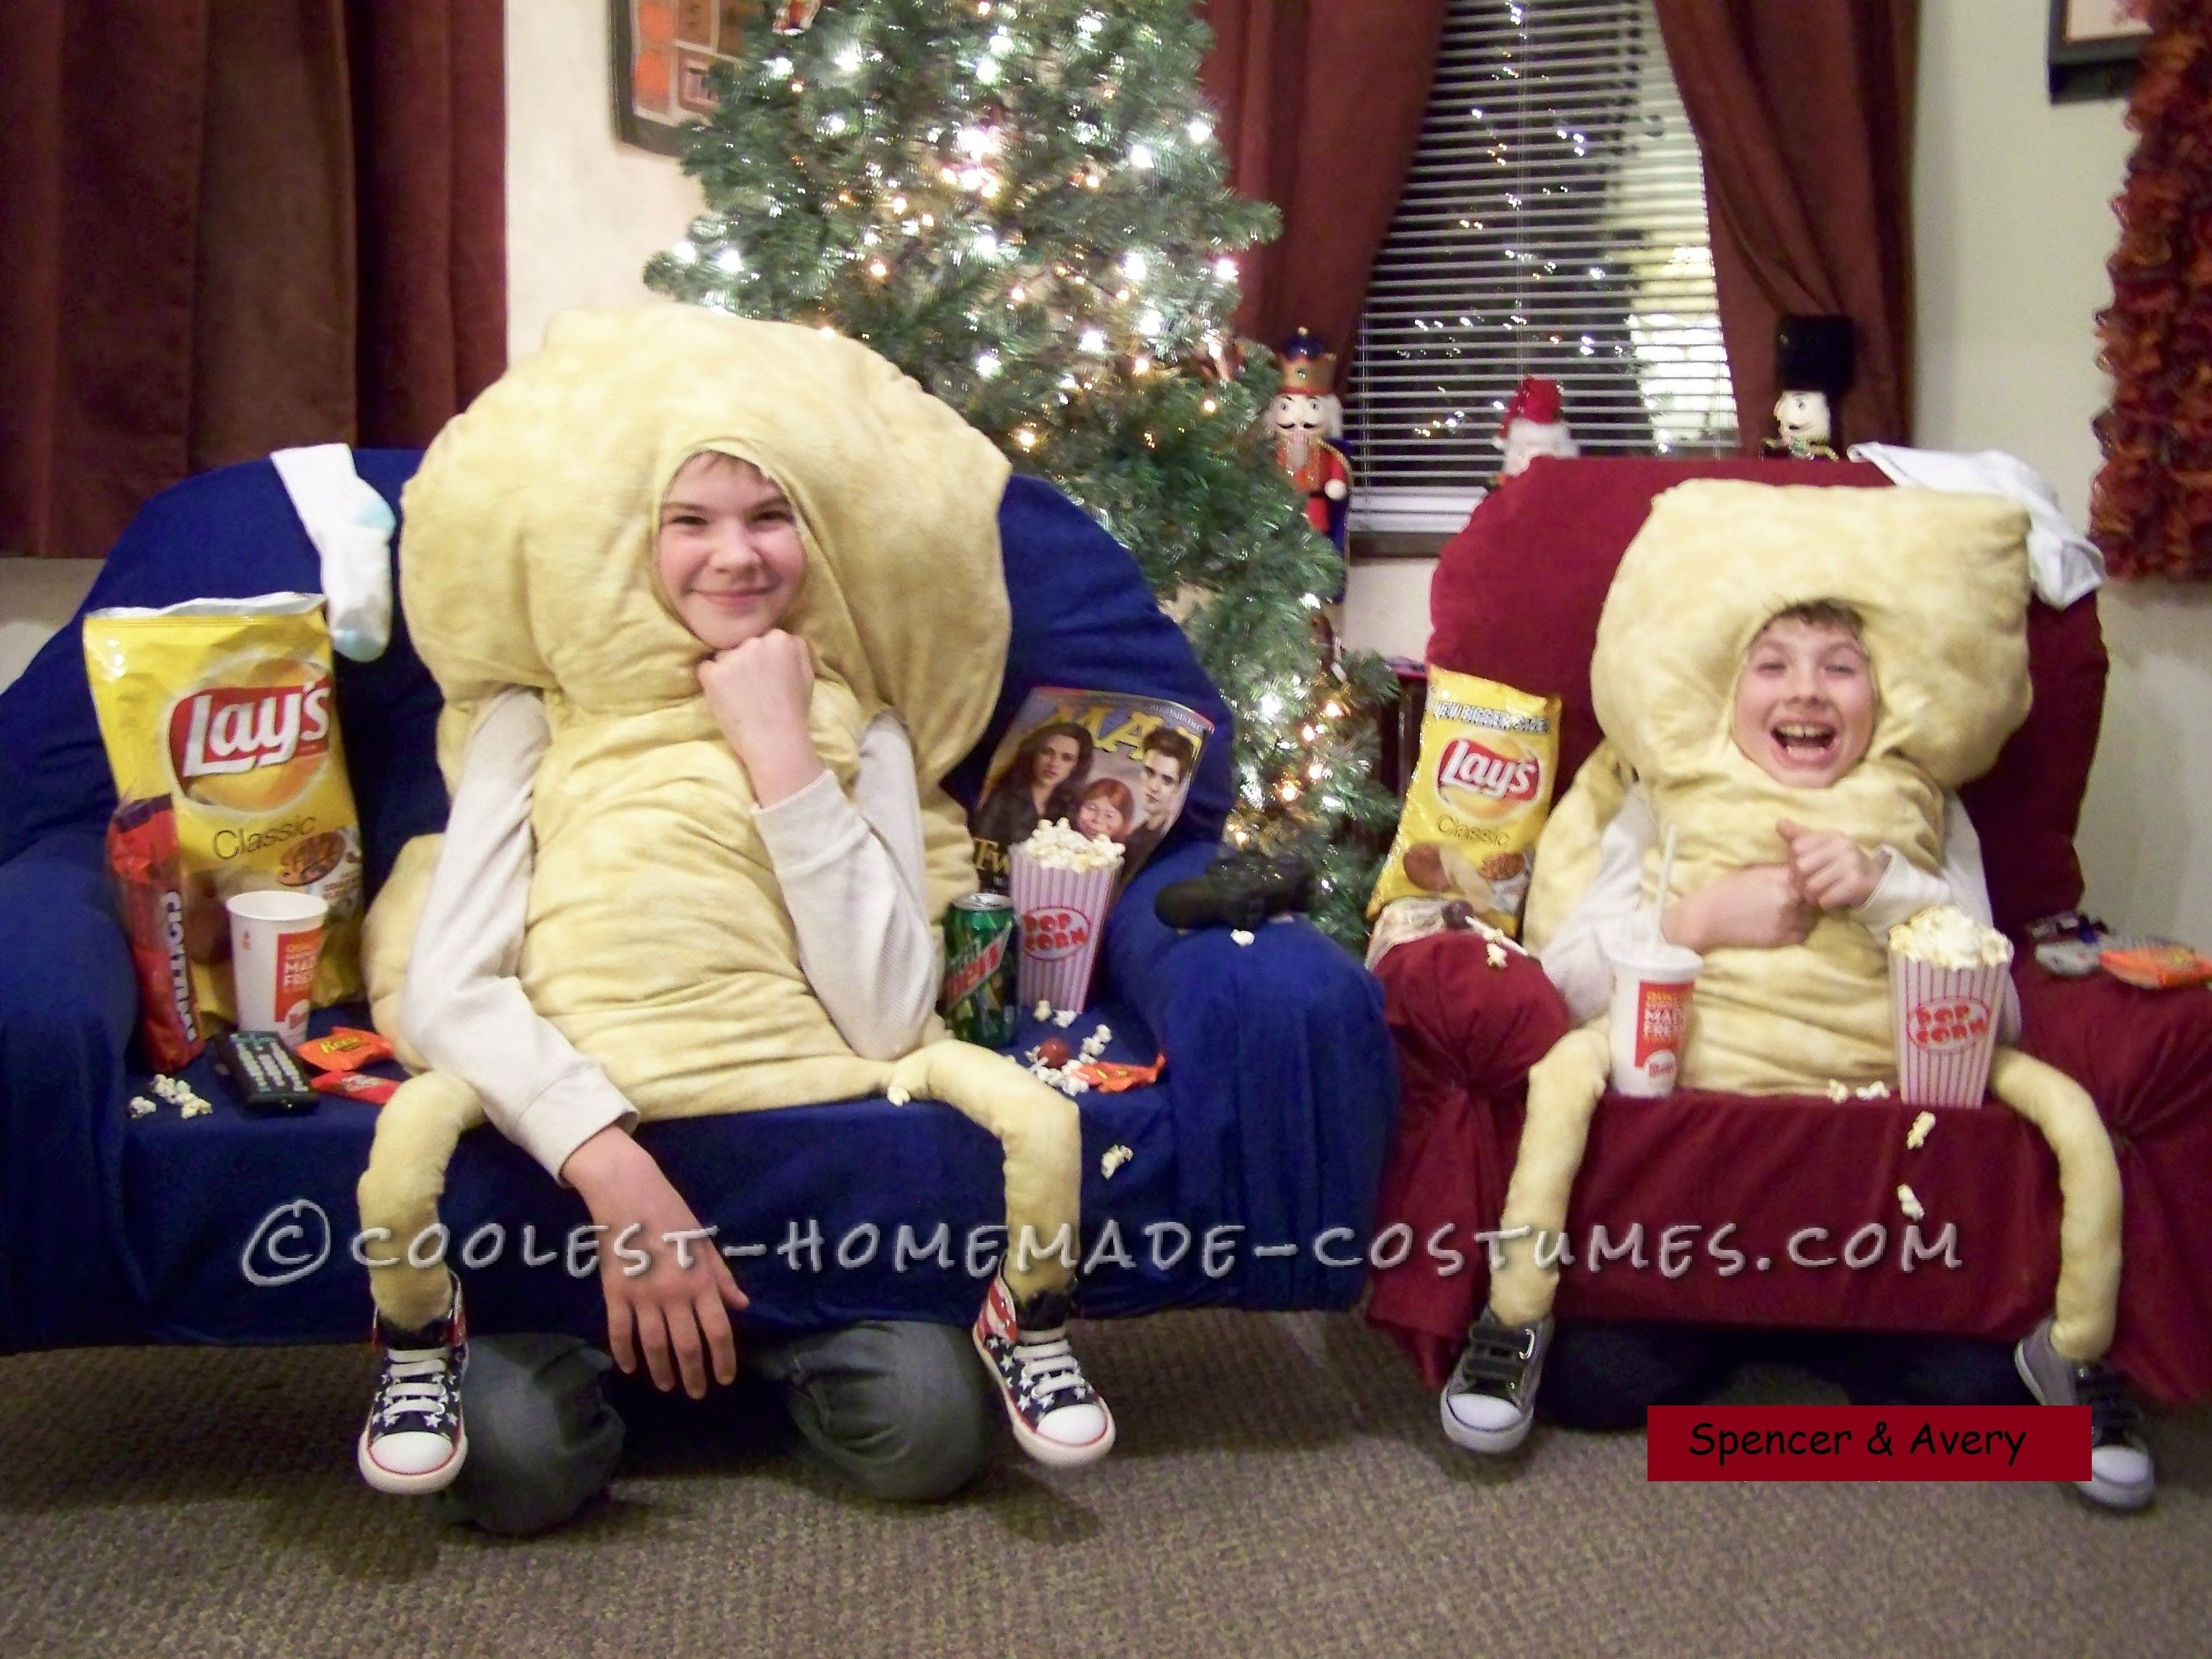 Coolest Couch Potato Costumes | Halloween costume contest, Costume ...